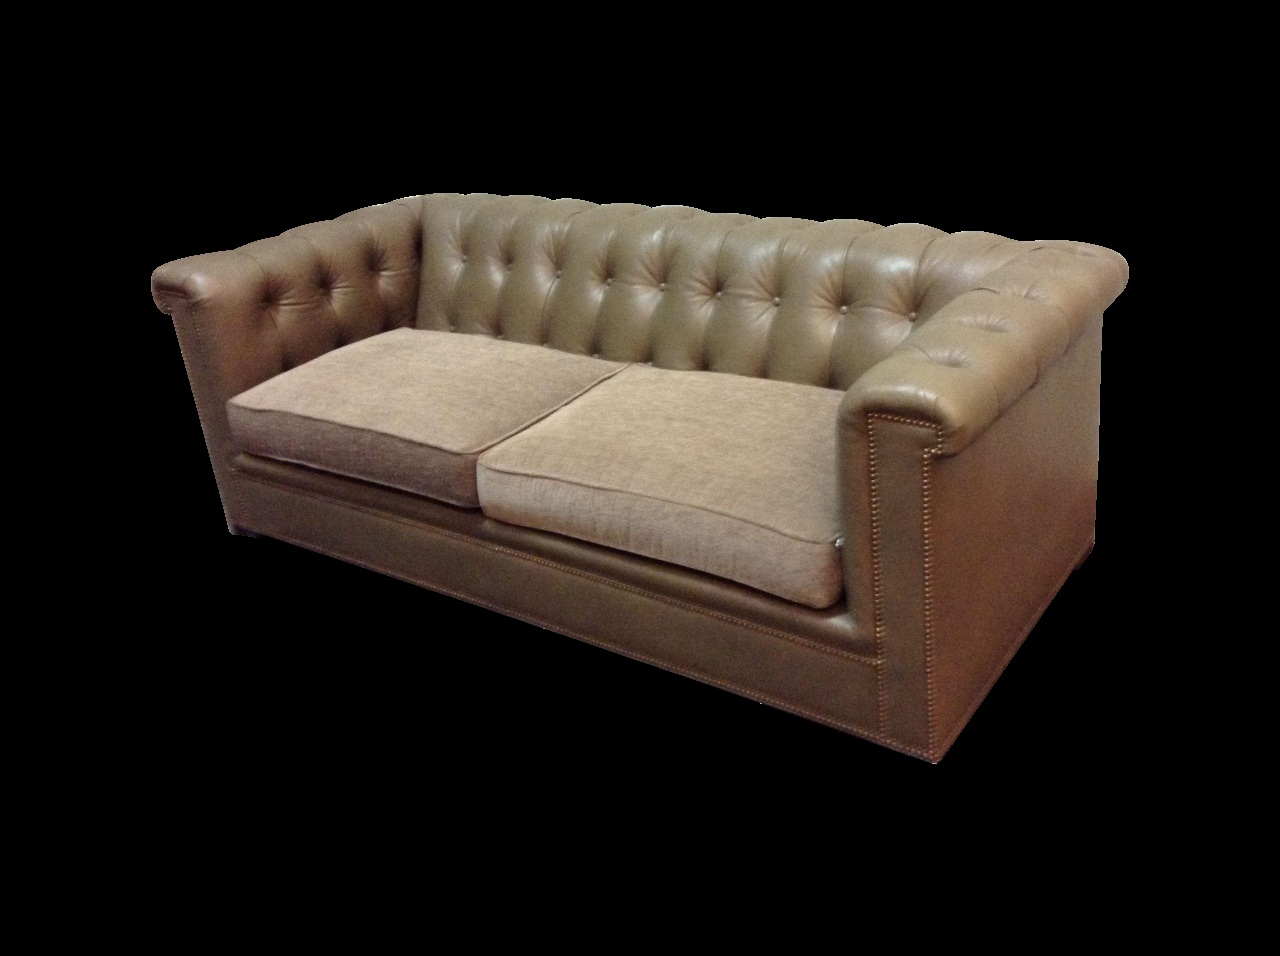 Walter Leather Sofa Fresh Hickory Chair Kent Tufted Leather Sofa On In Walter Leather Sofa Chairs (Image 23 of 25)